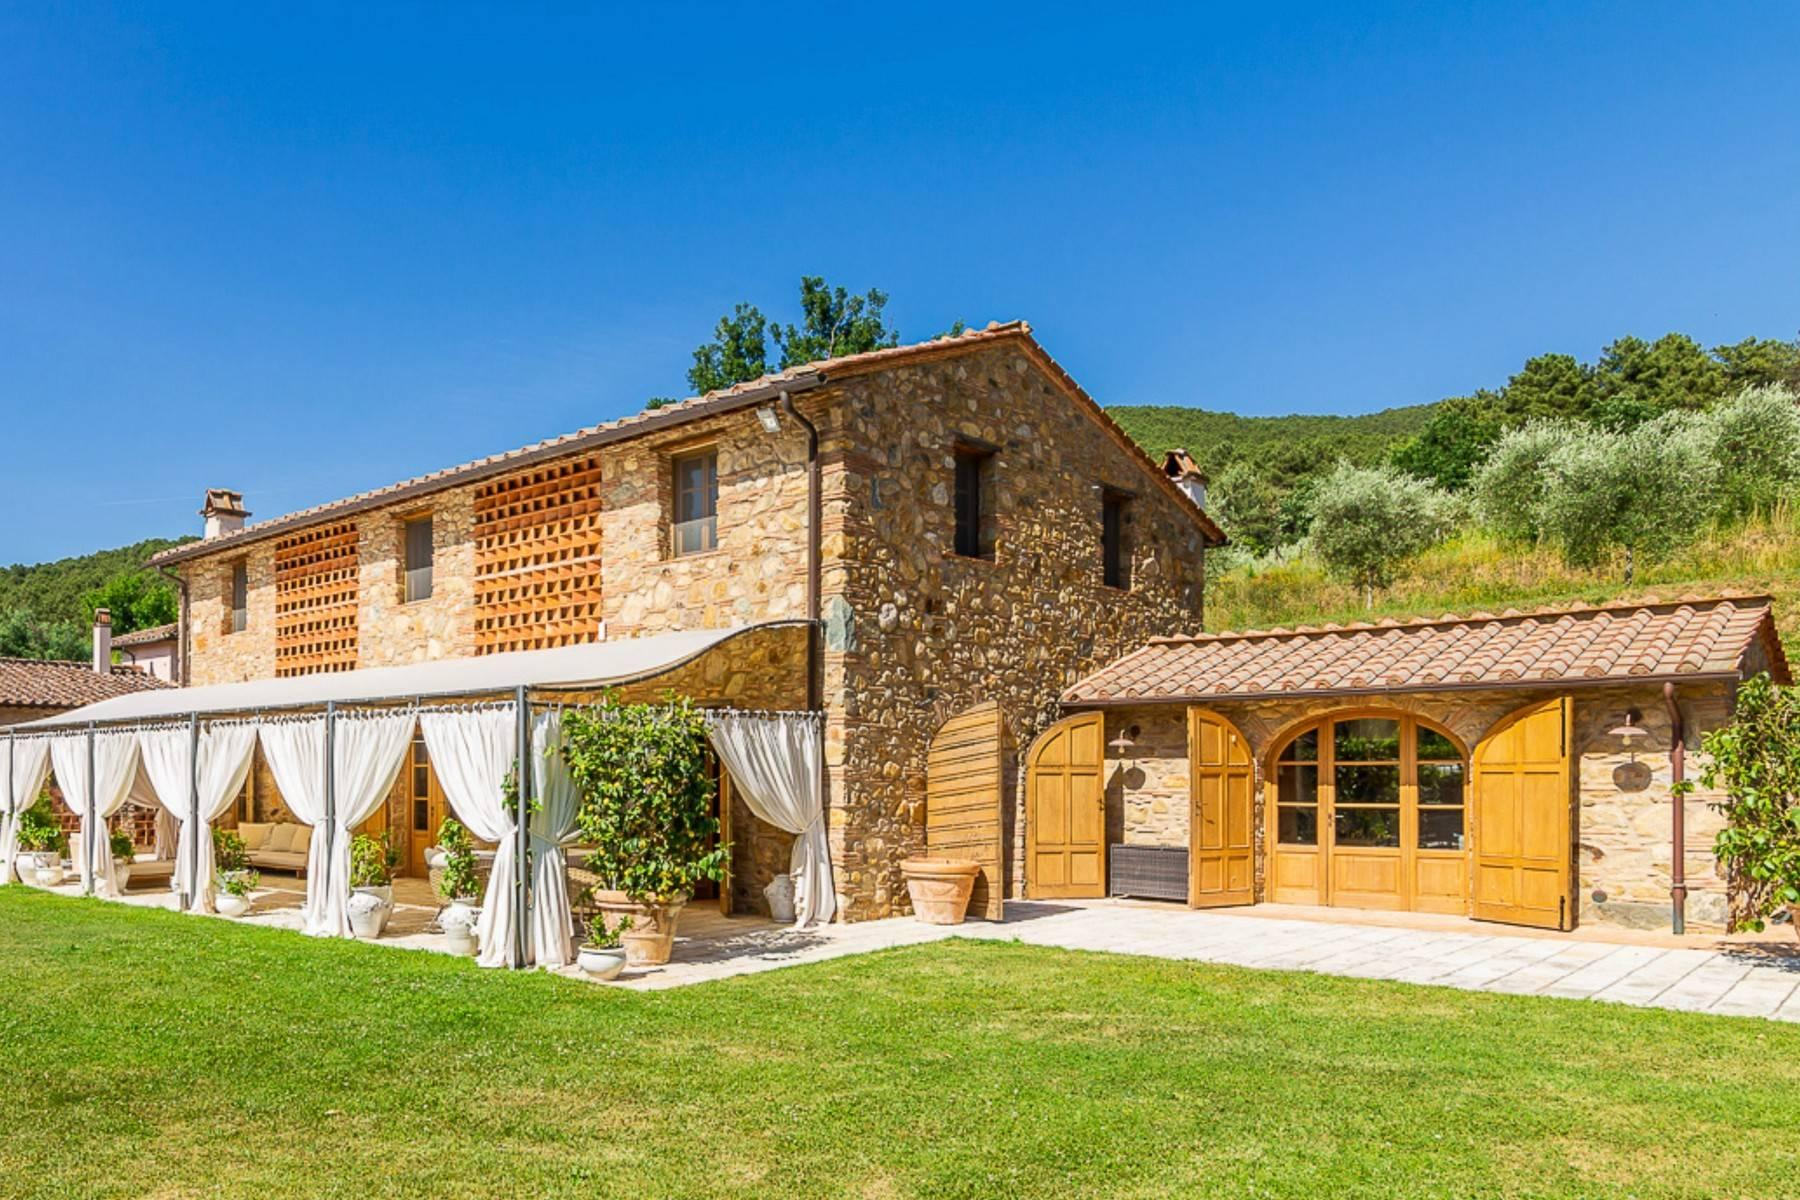 Majestic Luxury Villa with outbuildings on the hills south of Lucca - 3